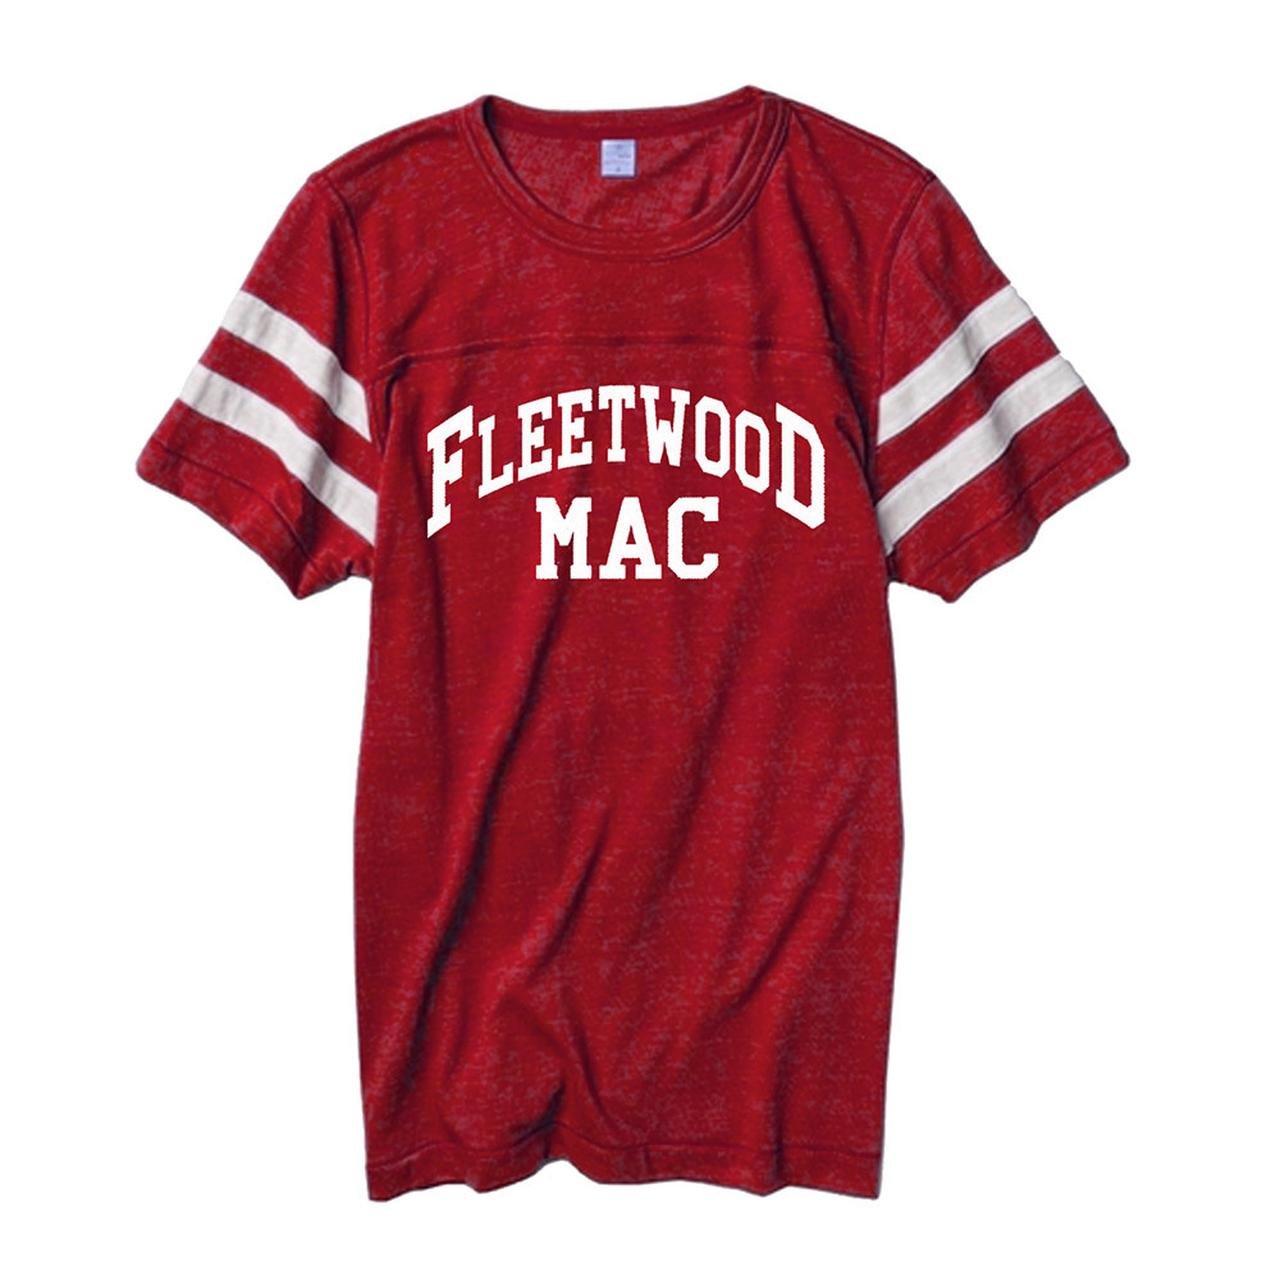 Fleetwood Mac 2015 Red Football Jersey T Shirt